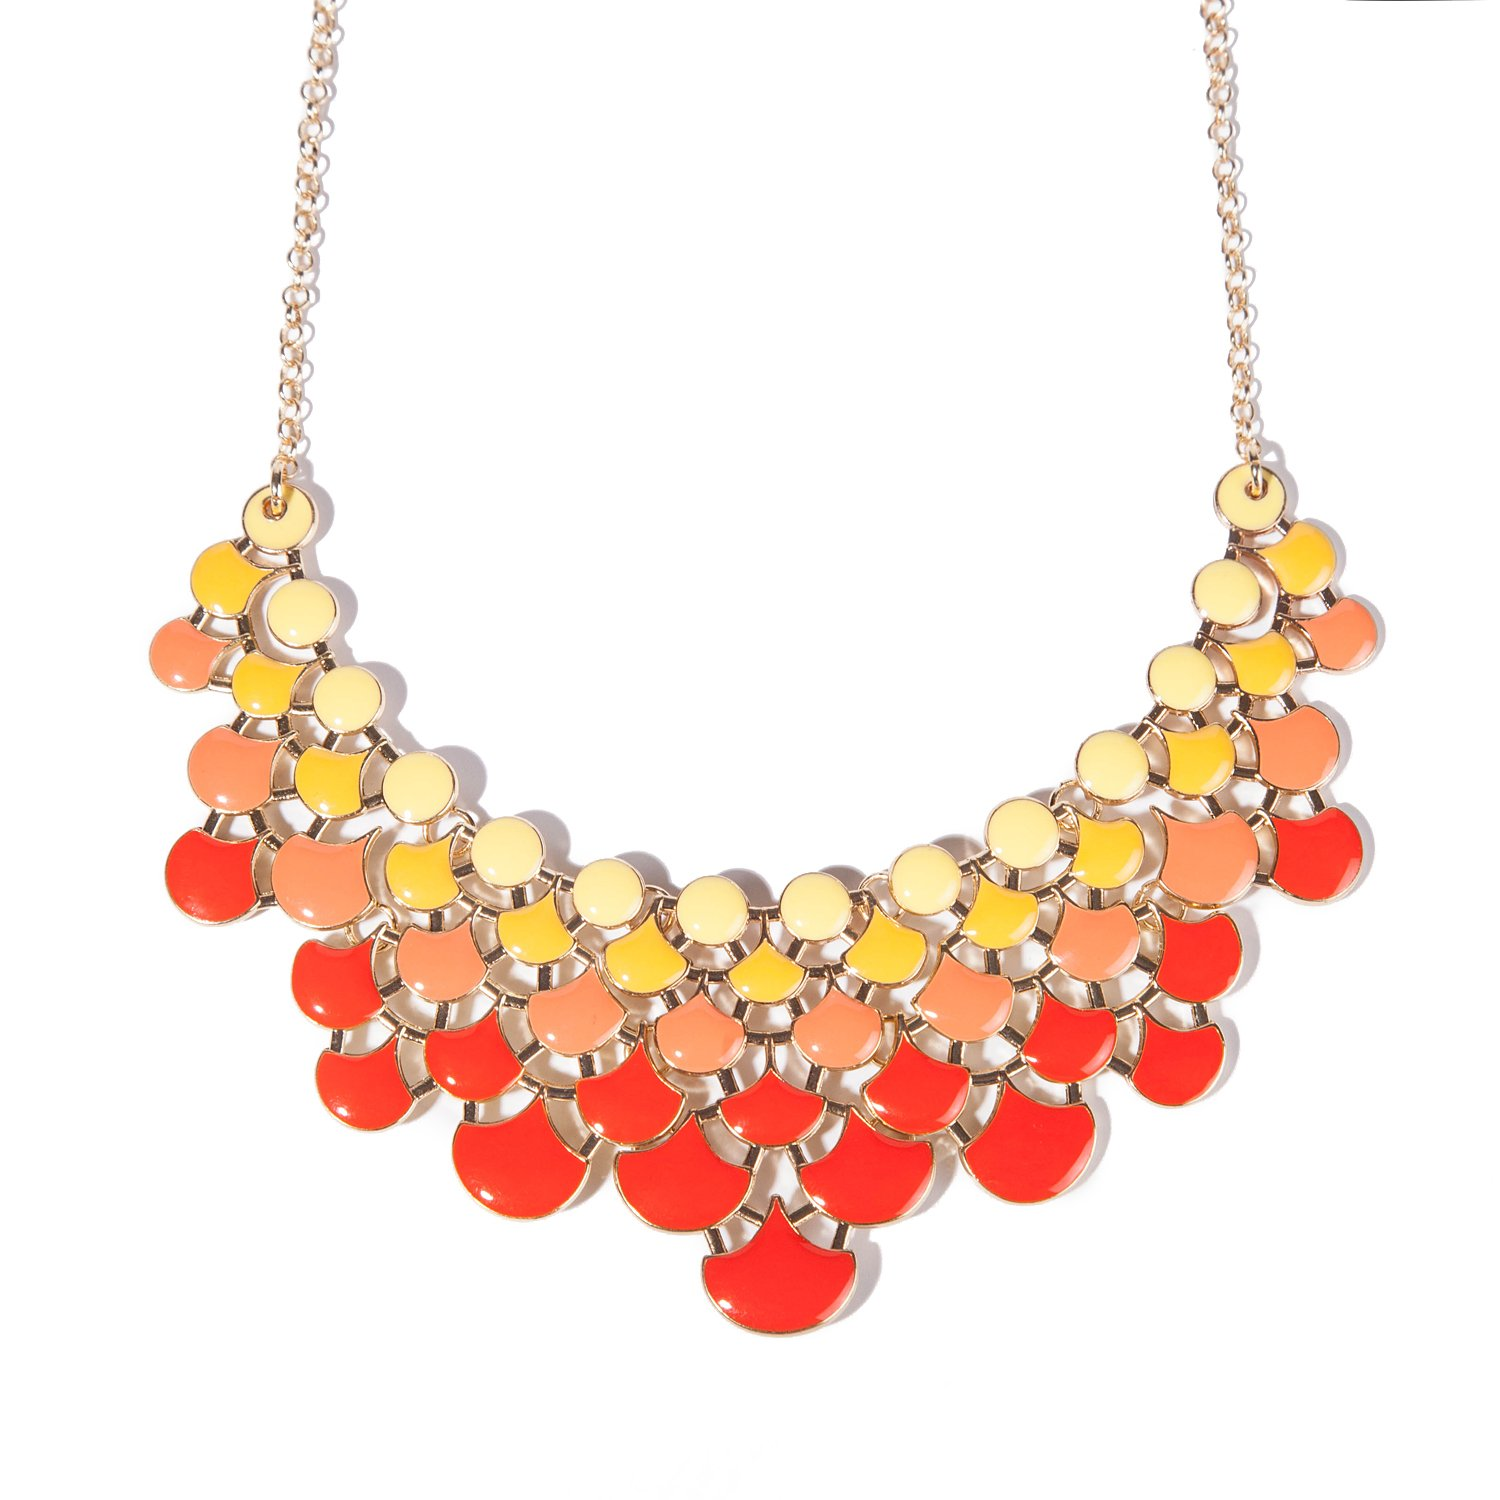 Jane Stone 2018 Fashion Bib Collar Necklace Multicolor Enamel Openwork Statement Jewelry for Women